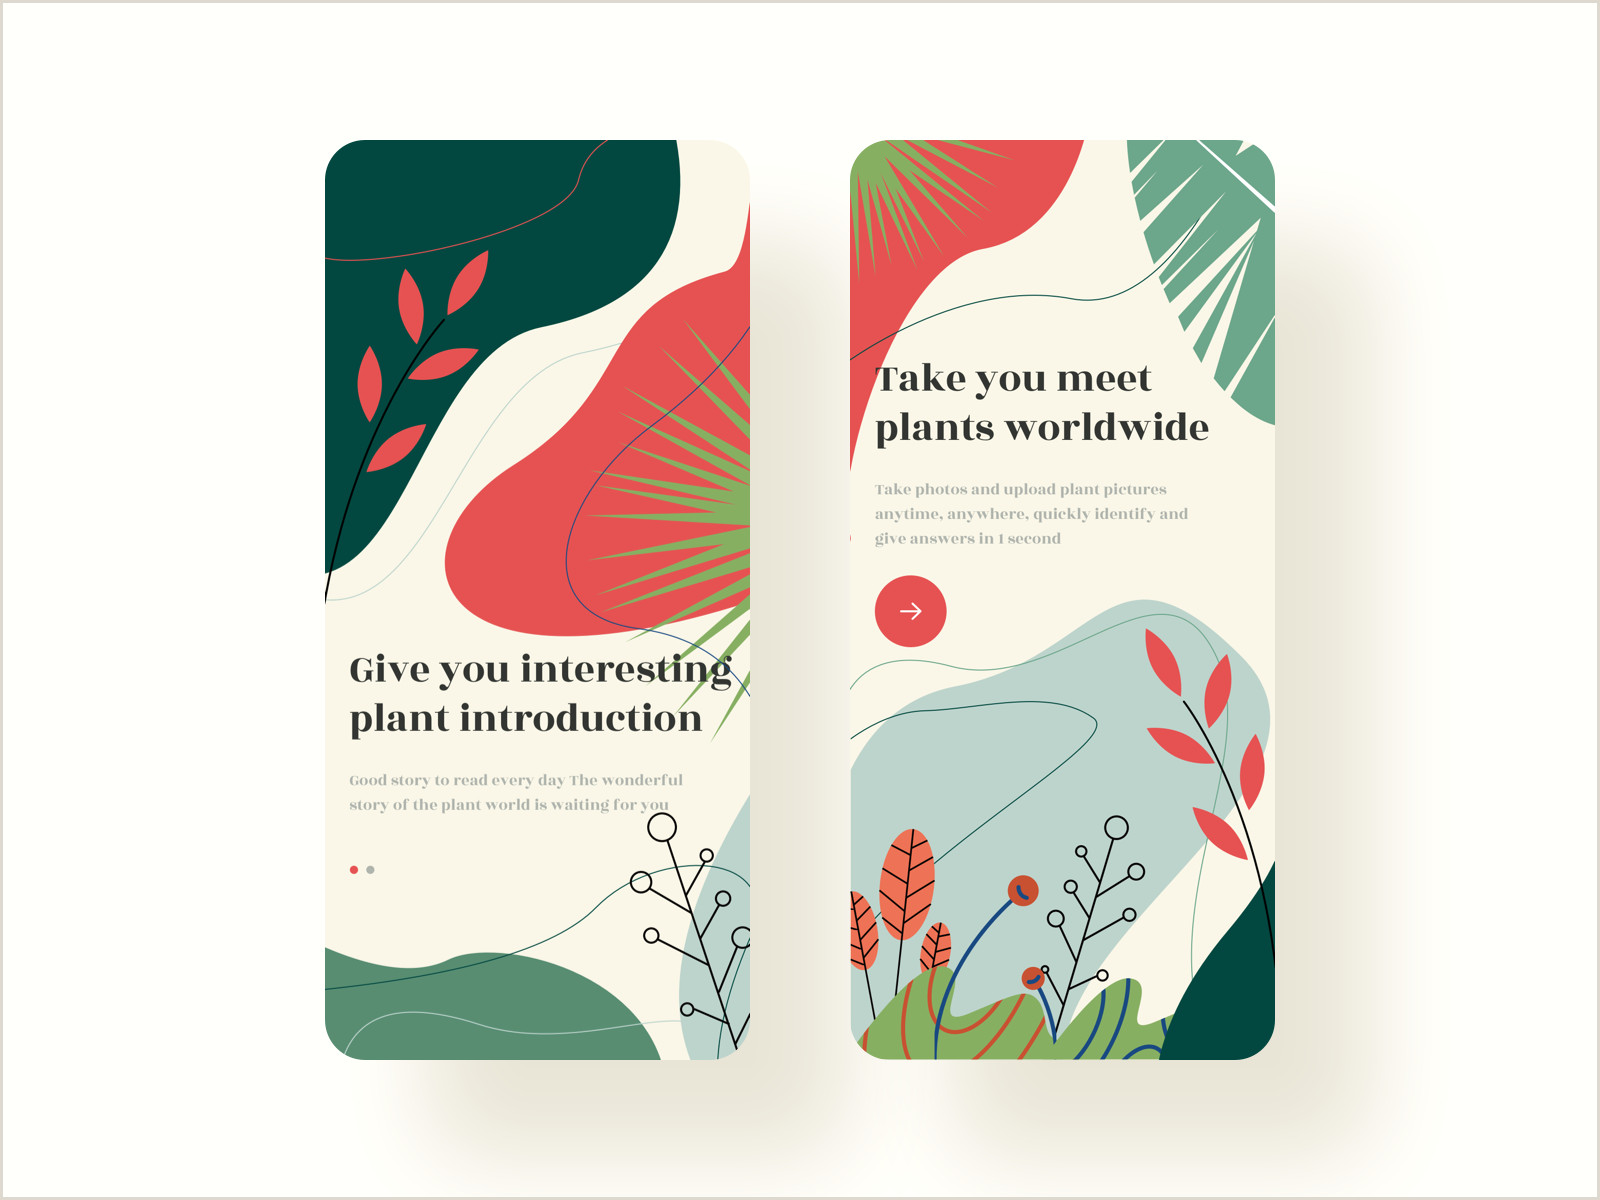 Best Time To Post On Dribbble Identify Plants App Guide Page In 2020